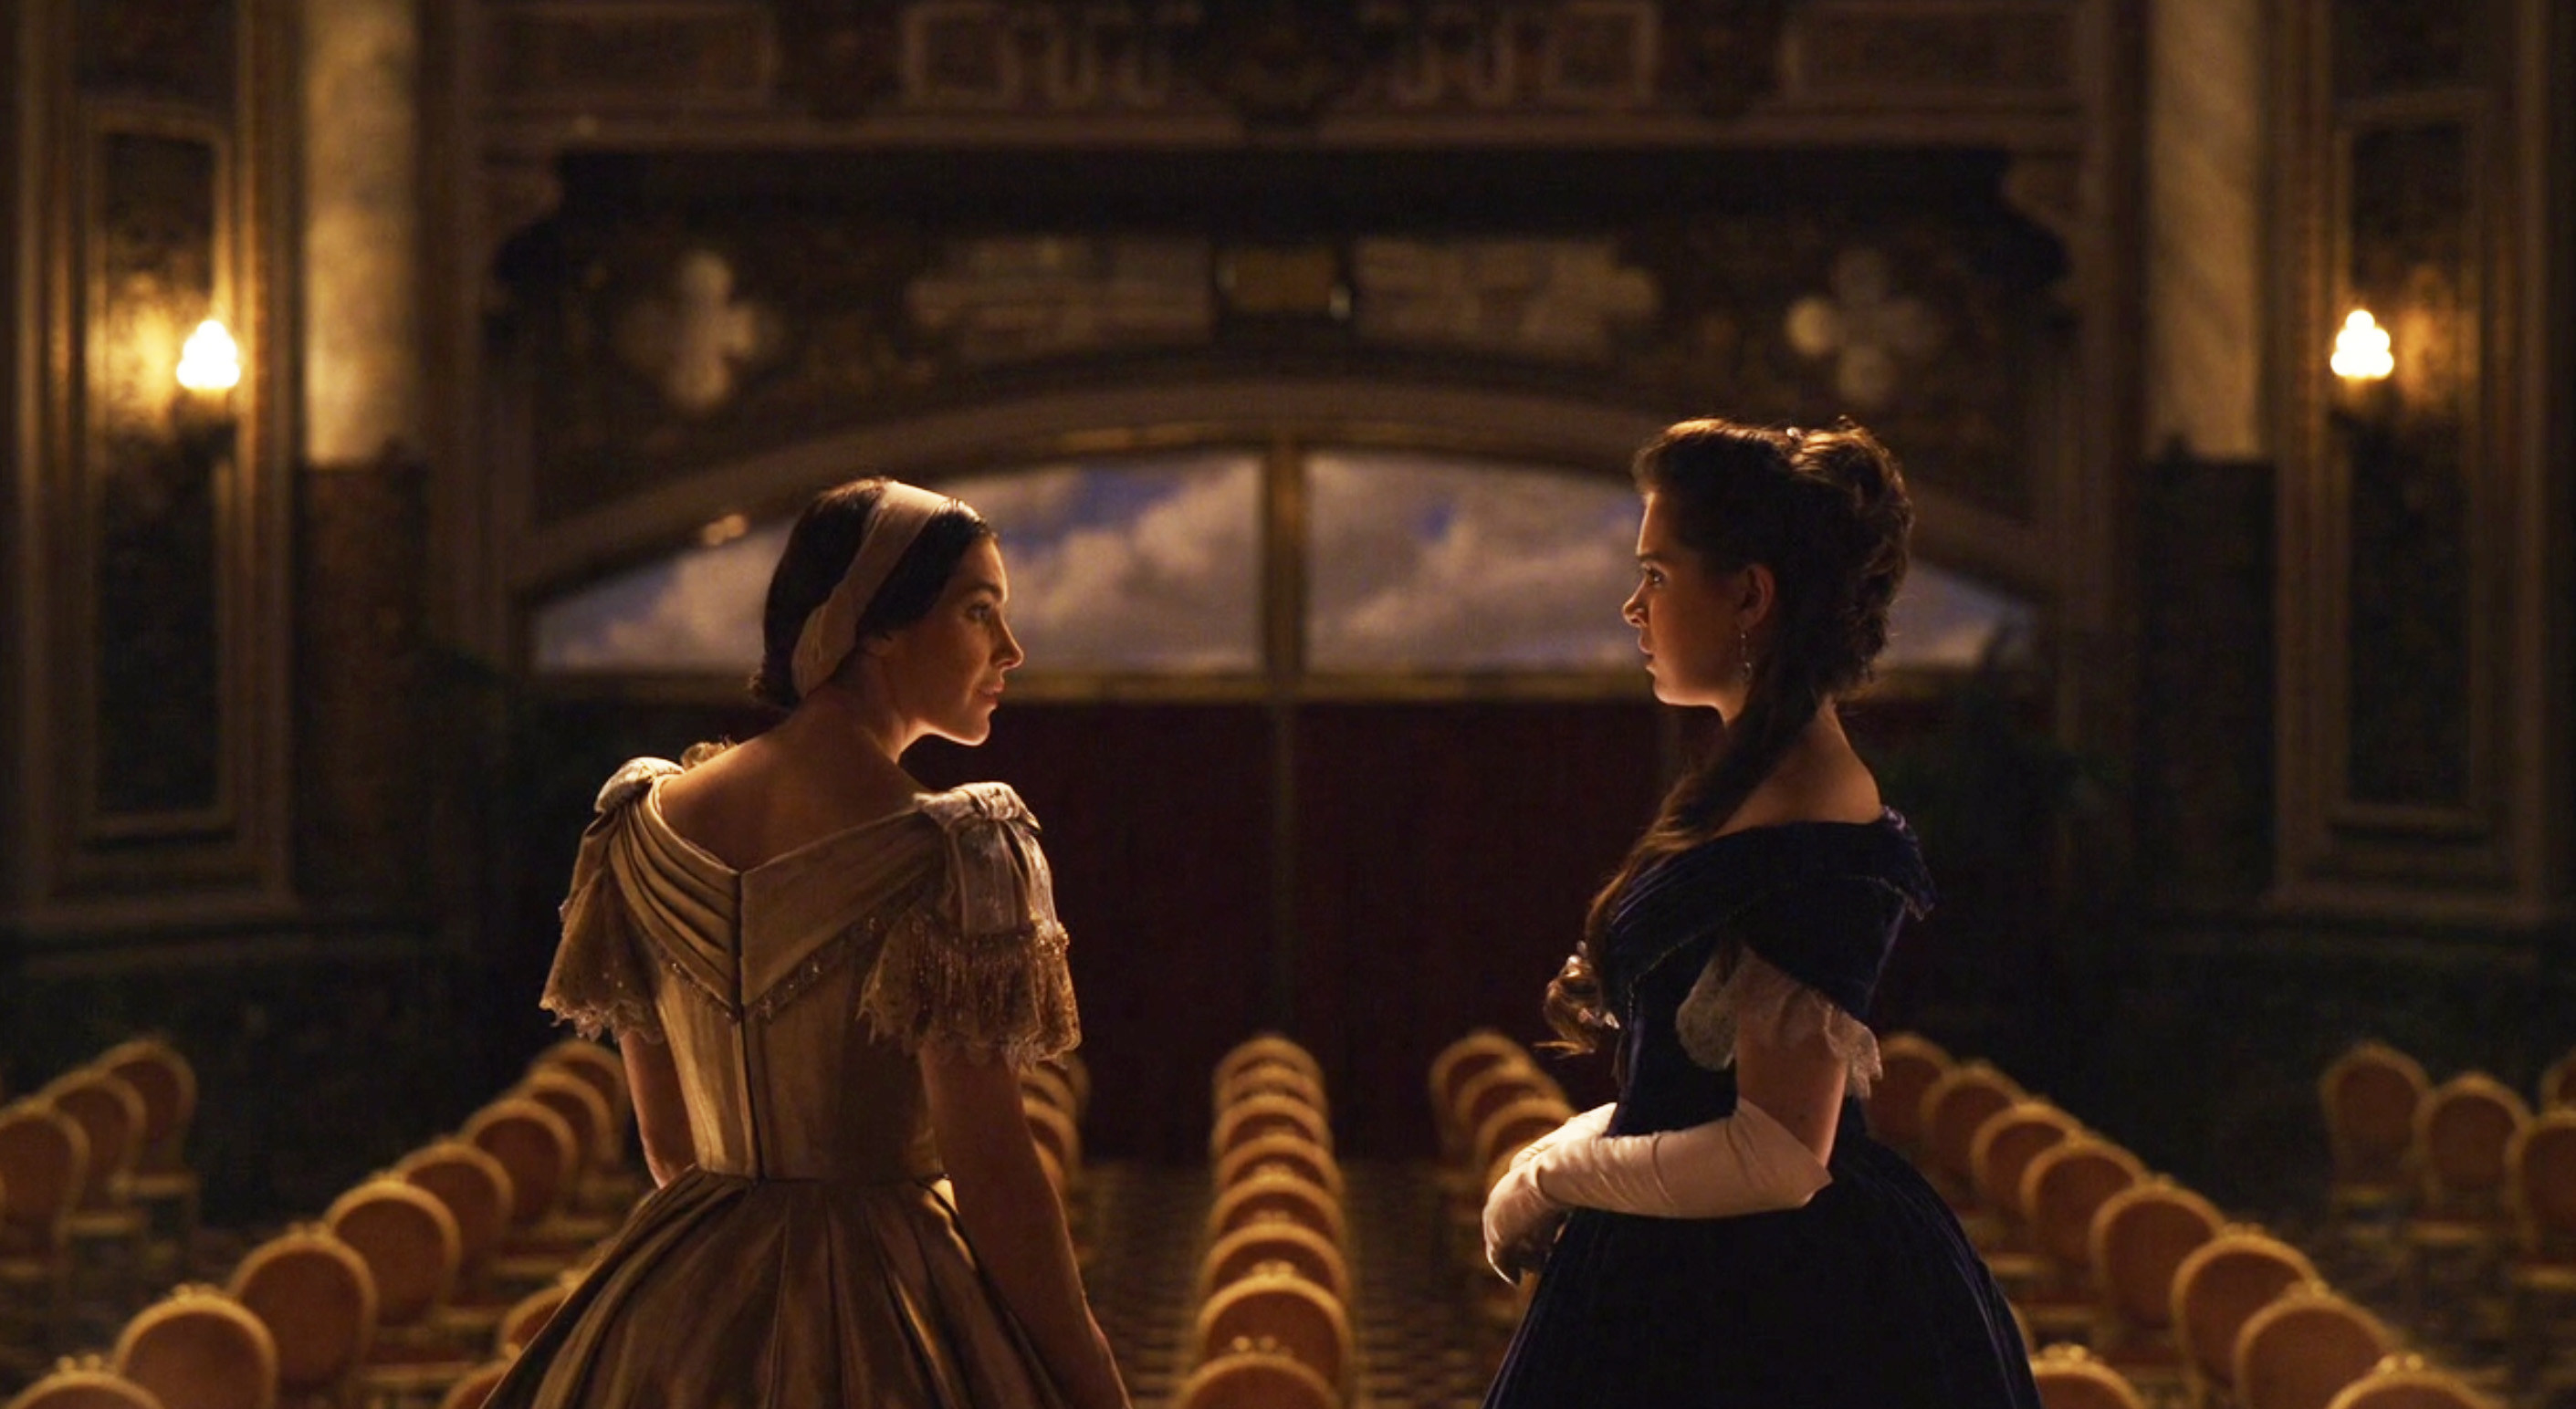 Hailee Steinfeld as Emily in Dickinson standing on the stage at the opera